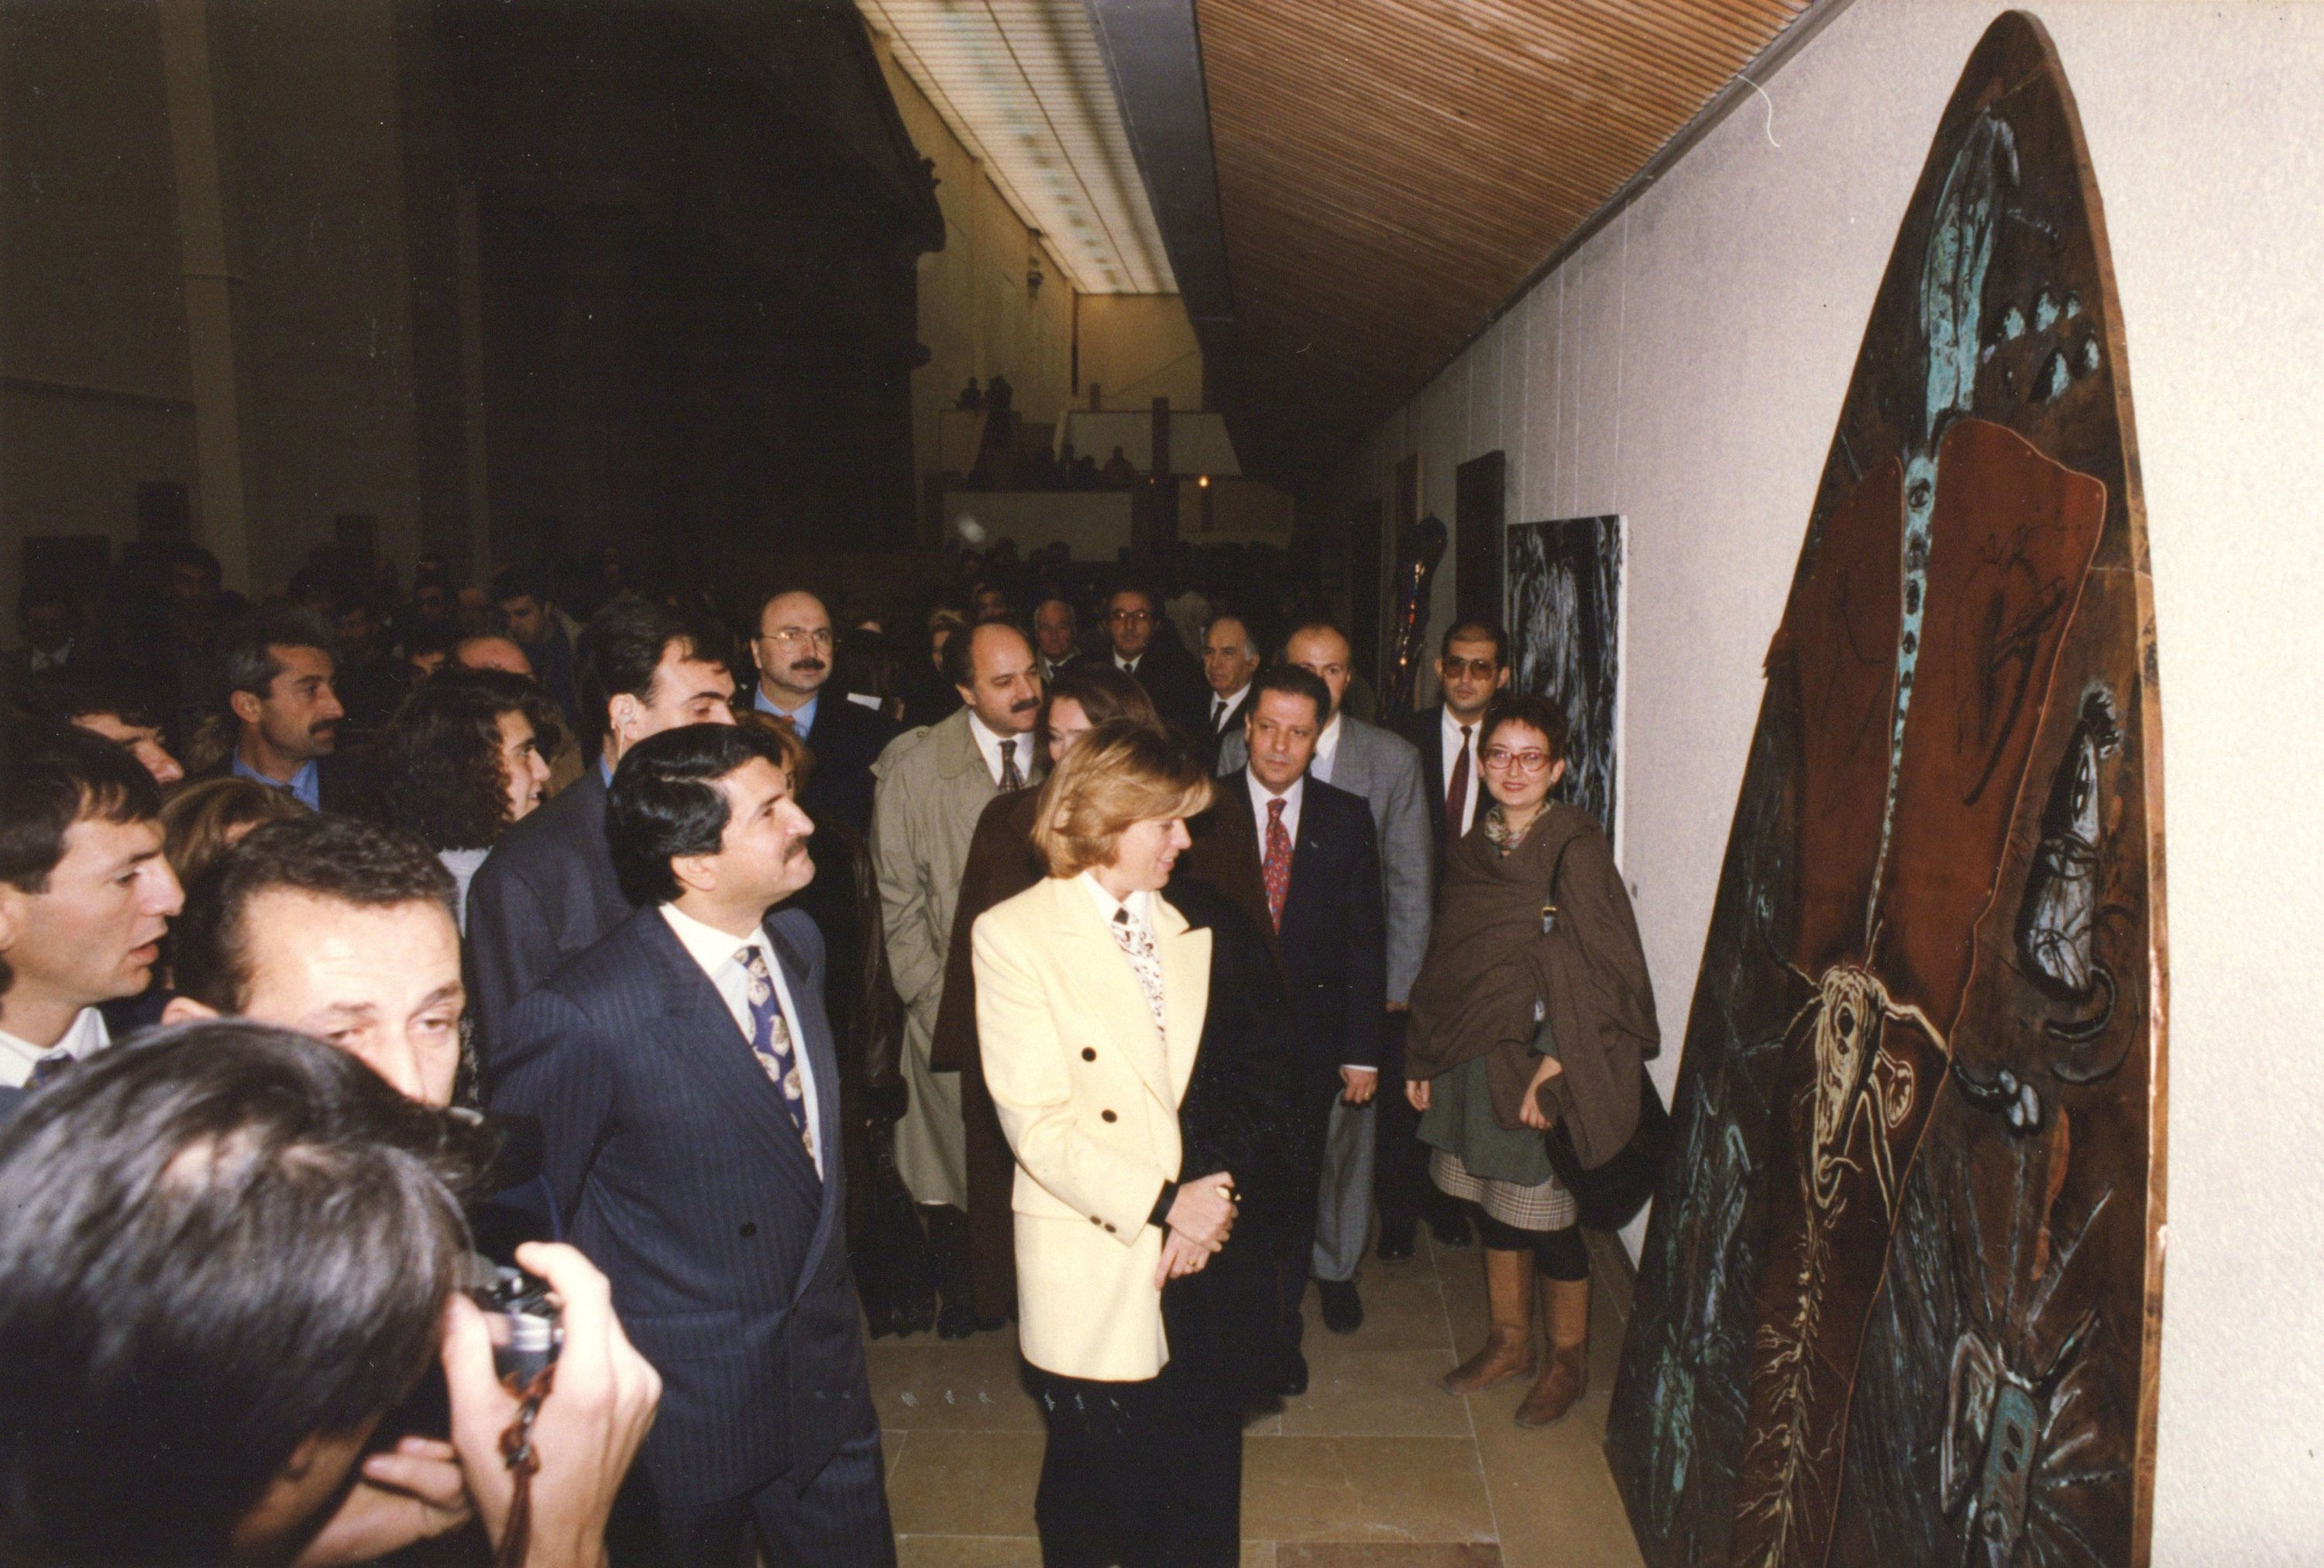 Then-Prime Minister Tansu Çiller, former Culture Minister Fikri Sağlar and artist IInci Eviner at the 1993 'Female Artists from the Republic to Present' exhibition at the Istanbul Archaeological Museums, Istanbul, Turkey. (PHOTO COURTESY OF SALT Research)